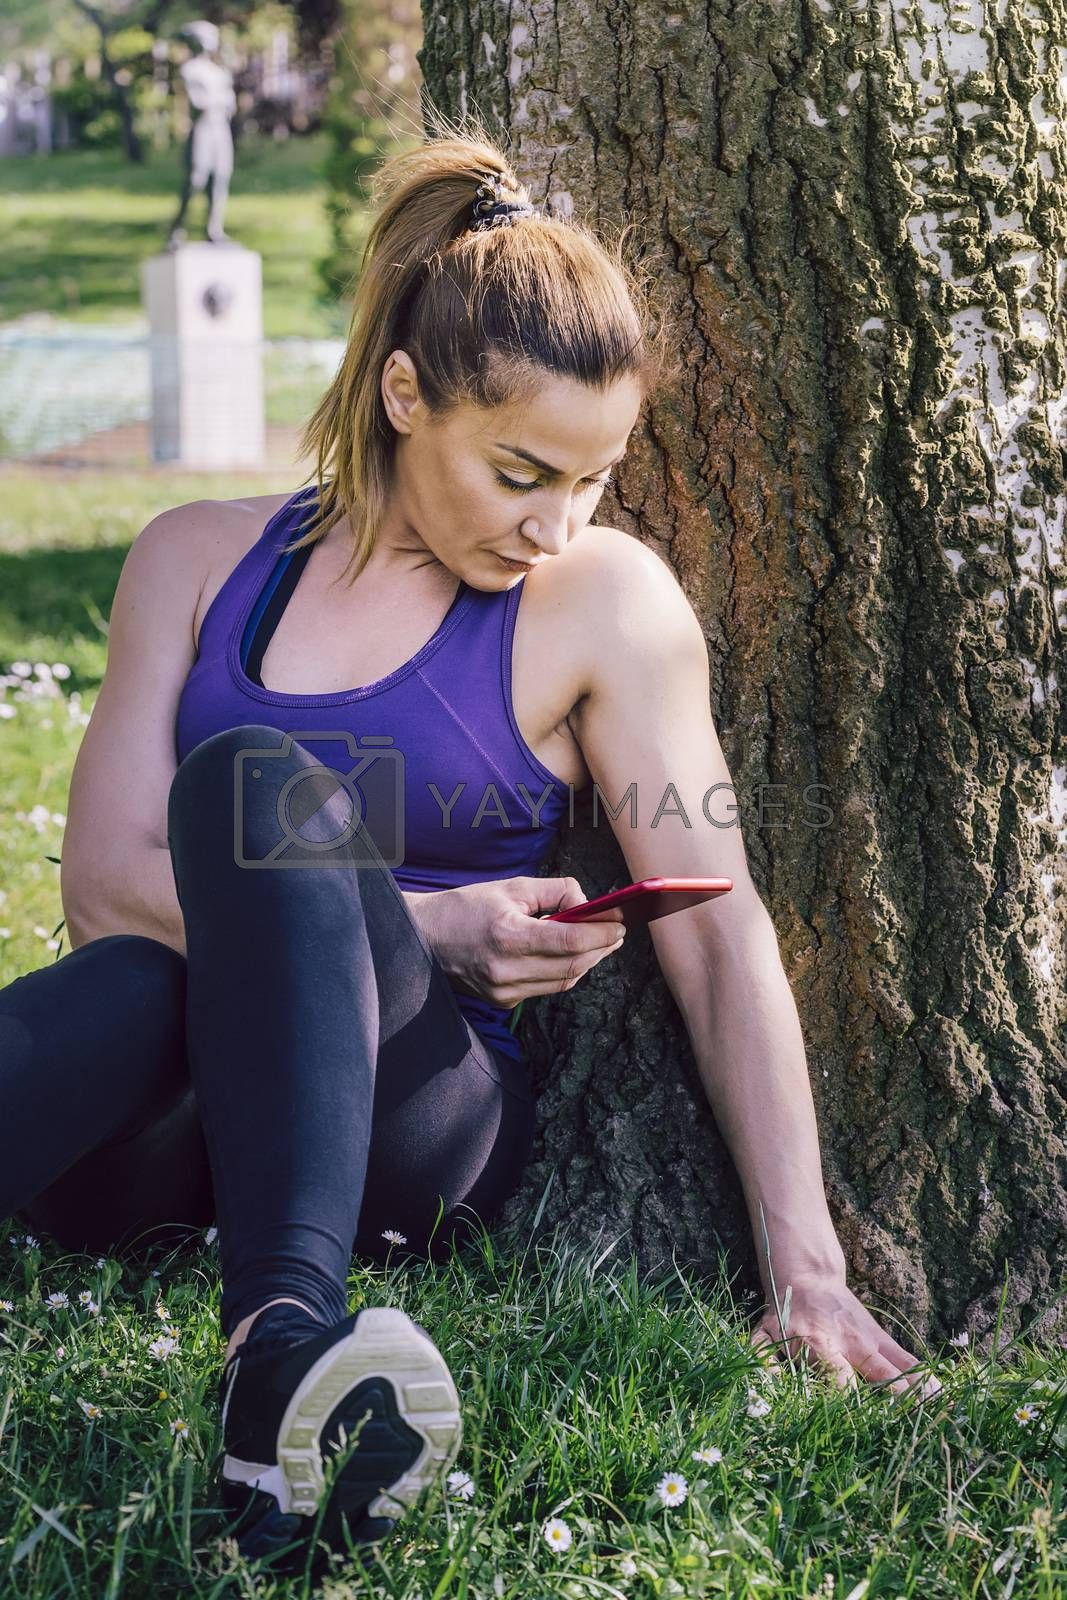 sports woman taking a look to her phone while resting after exercise sitting next to a tree, healthy modern lifestyle and sport concept